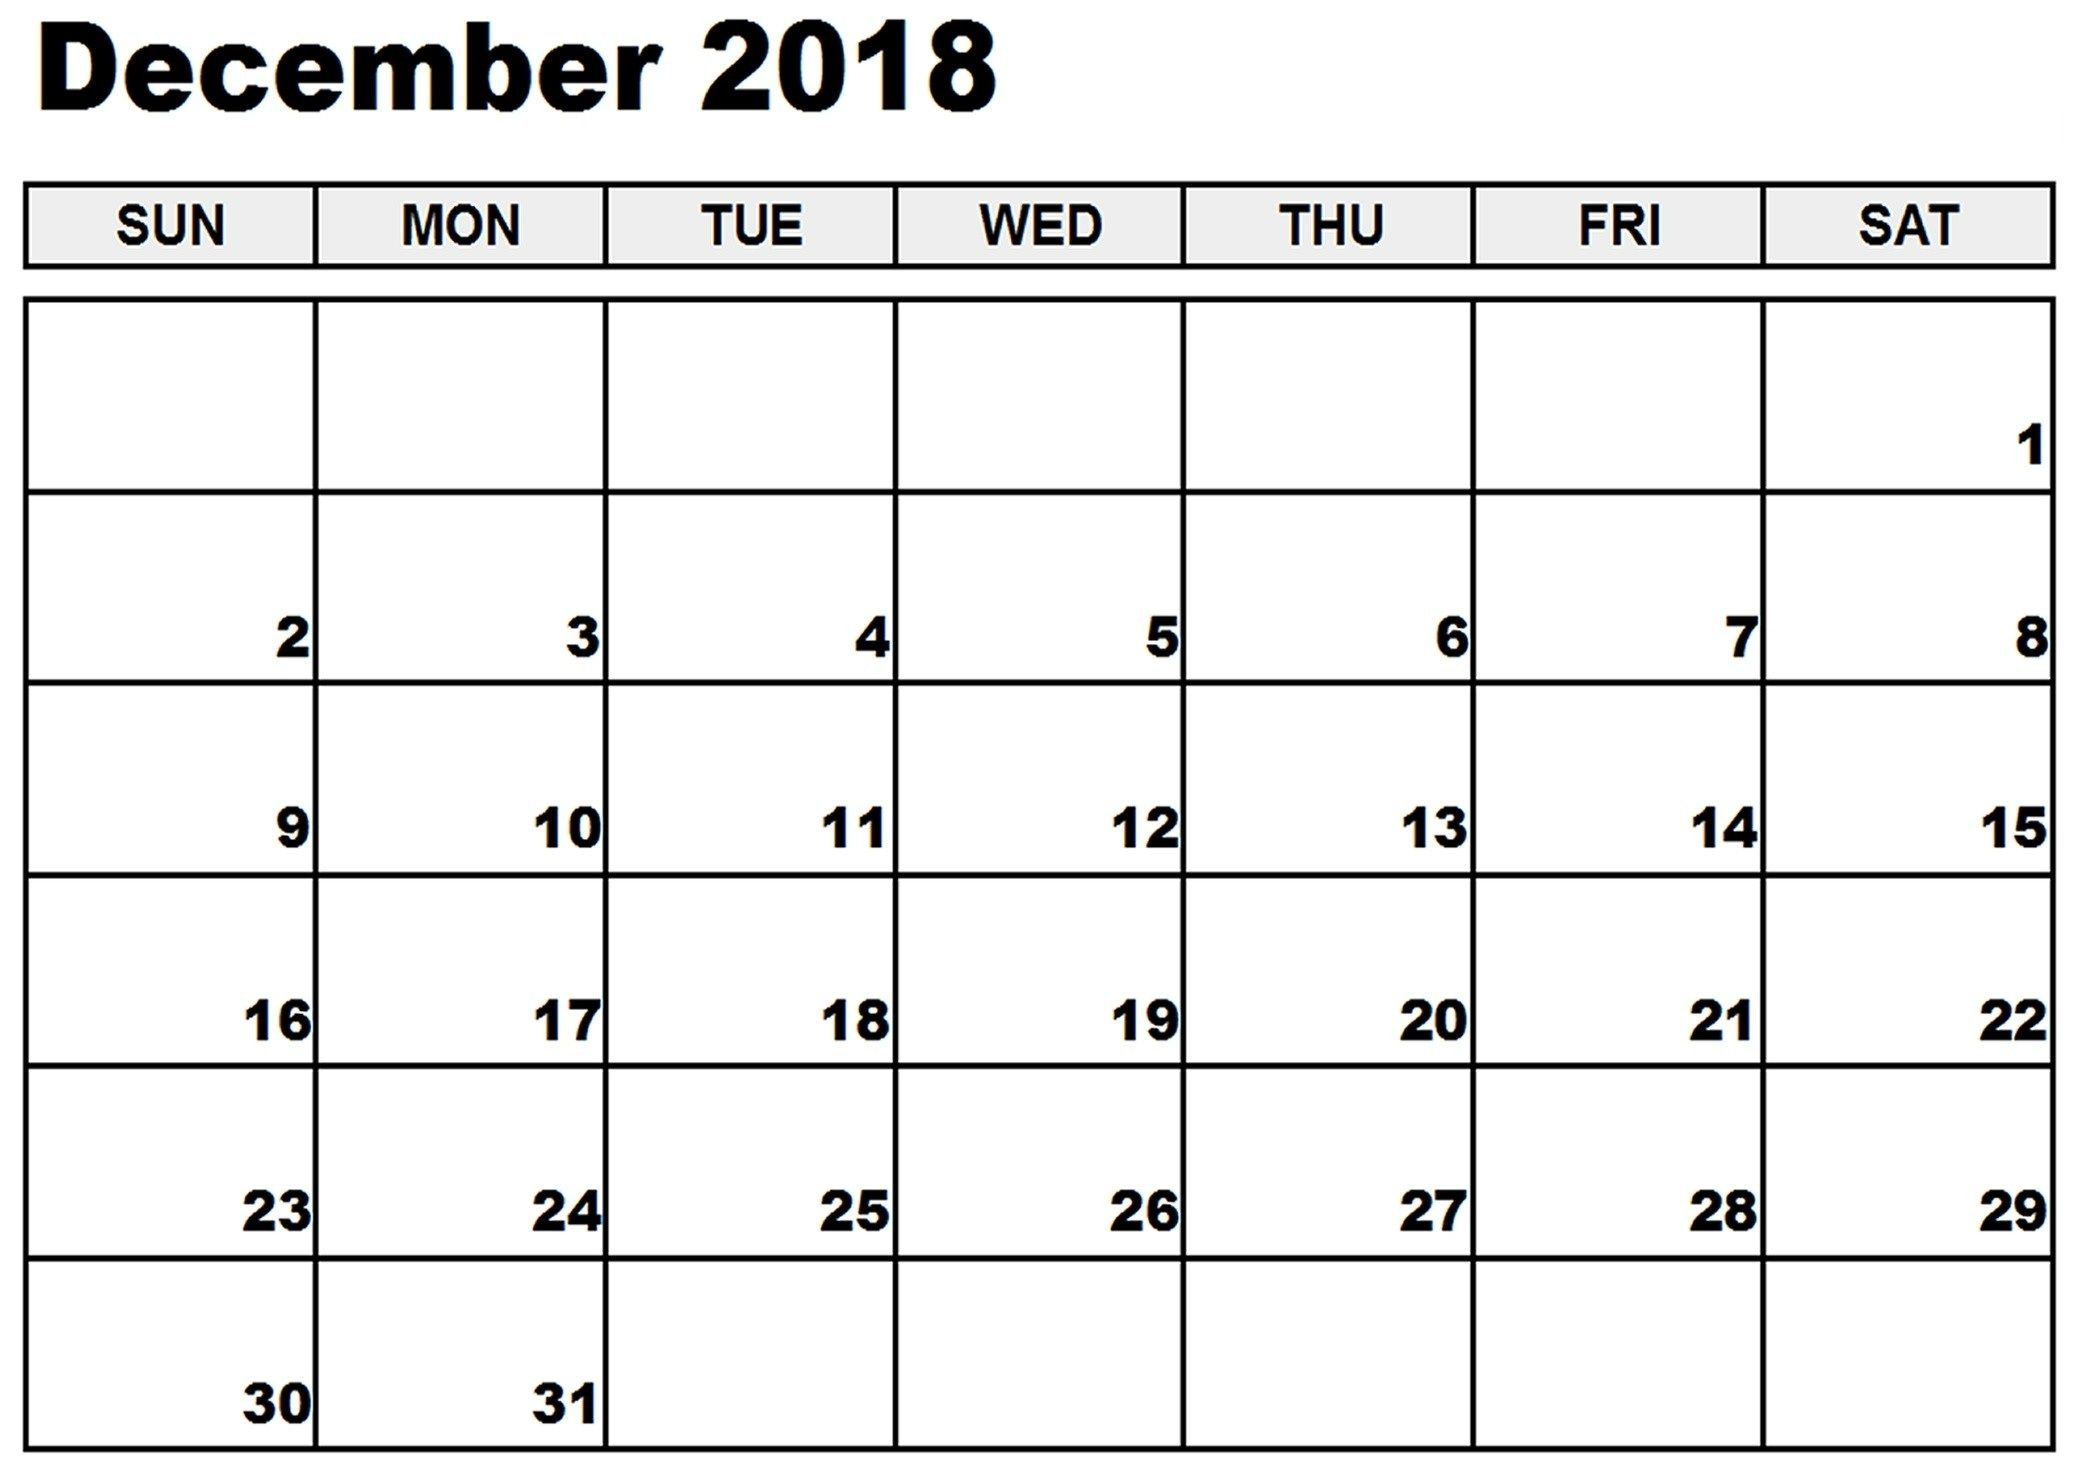 December 2018 Printable Calendar Notes To Do List Reminders intended for Blank Printable Calendar By Month With Notes